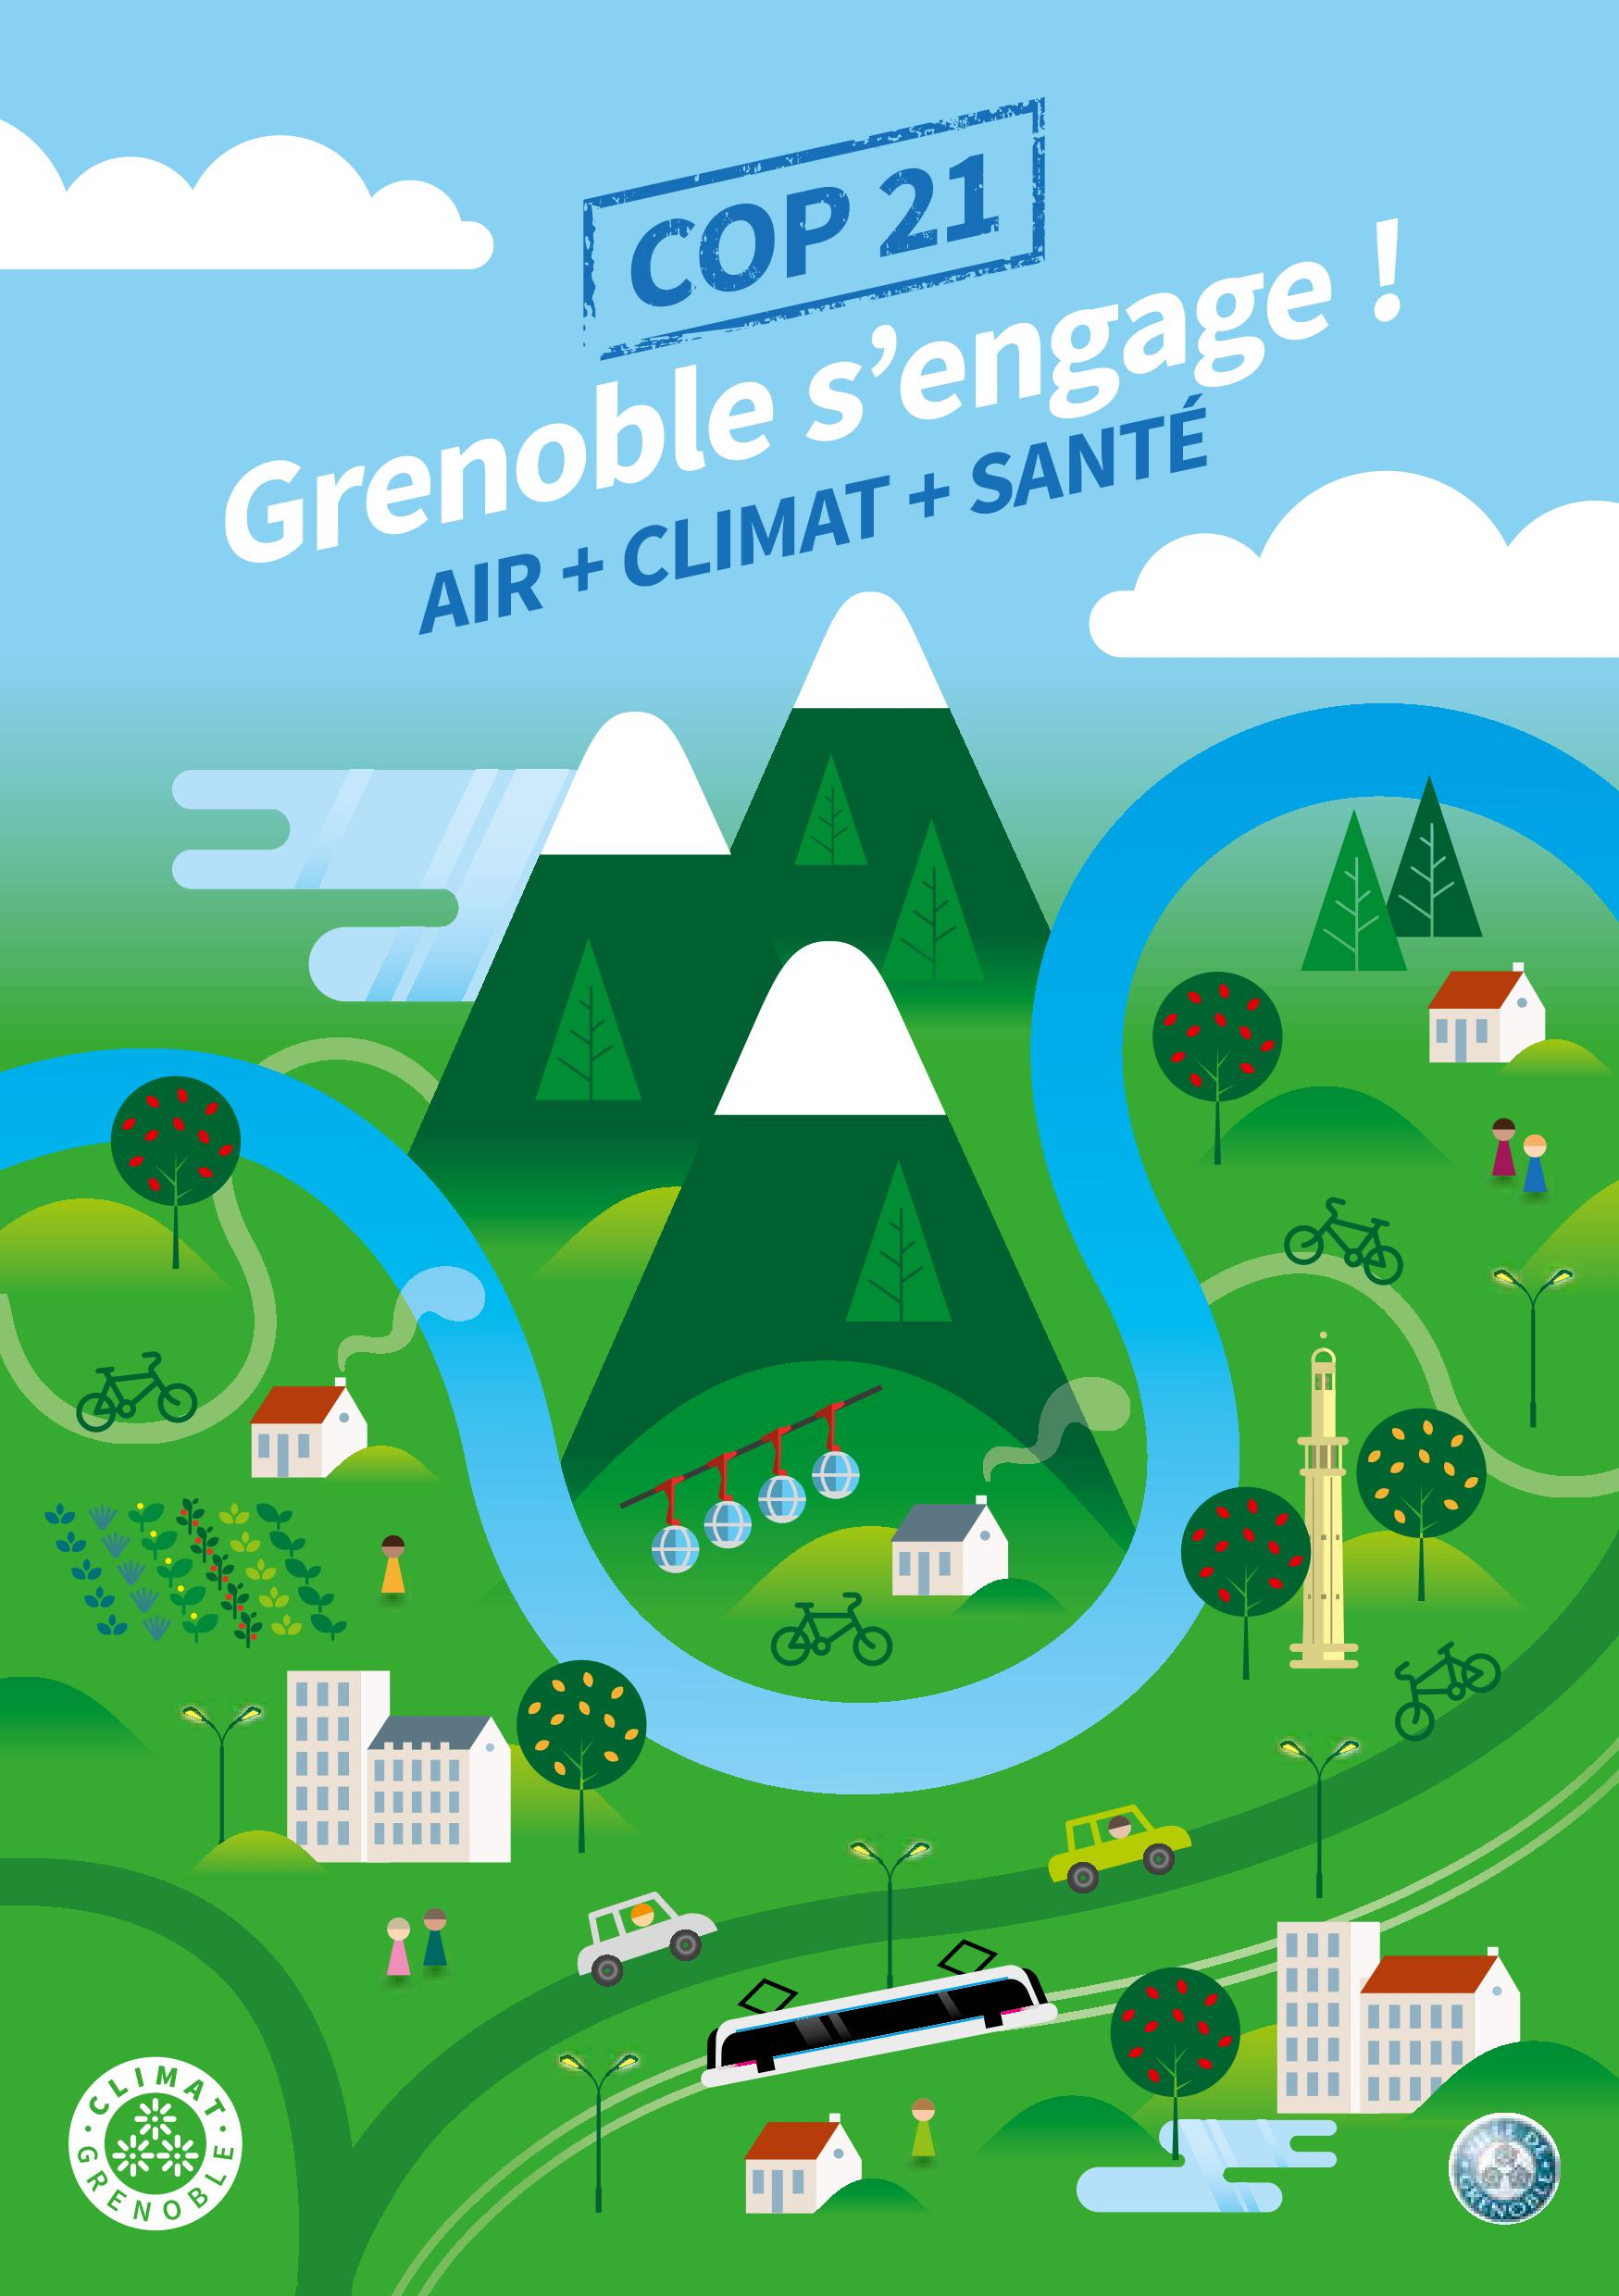 Grenoble s'engage COP21.1 (3)